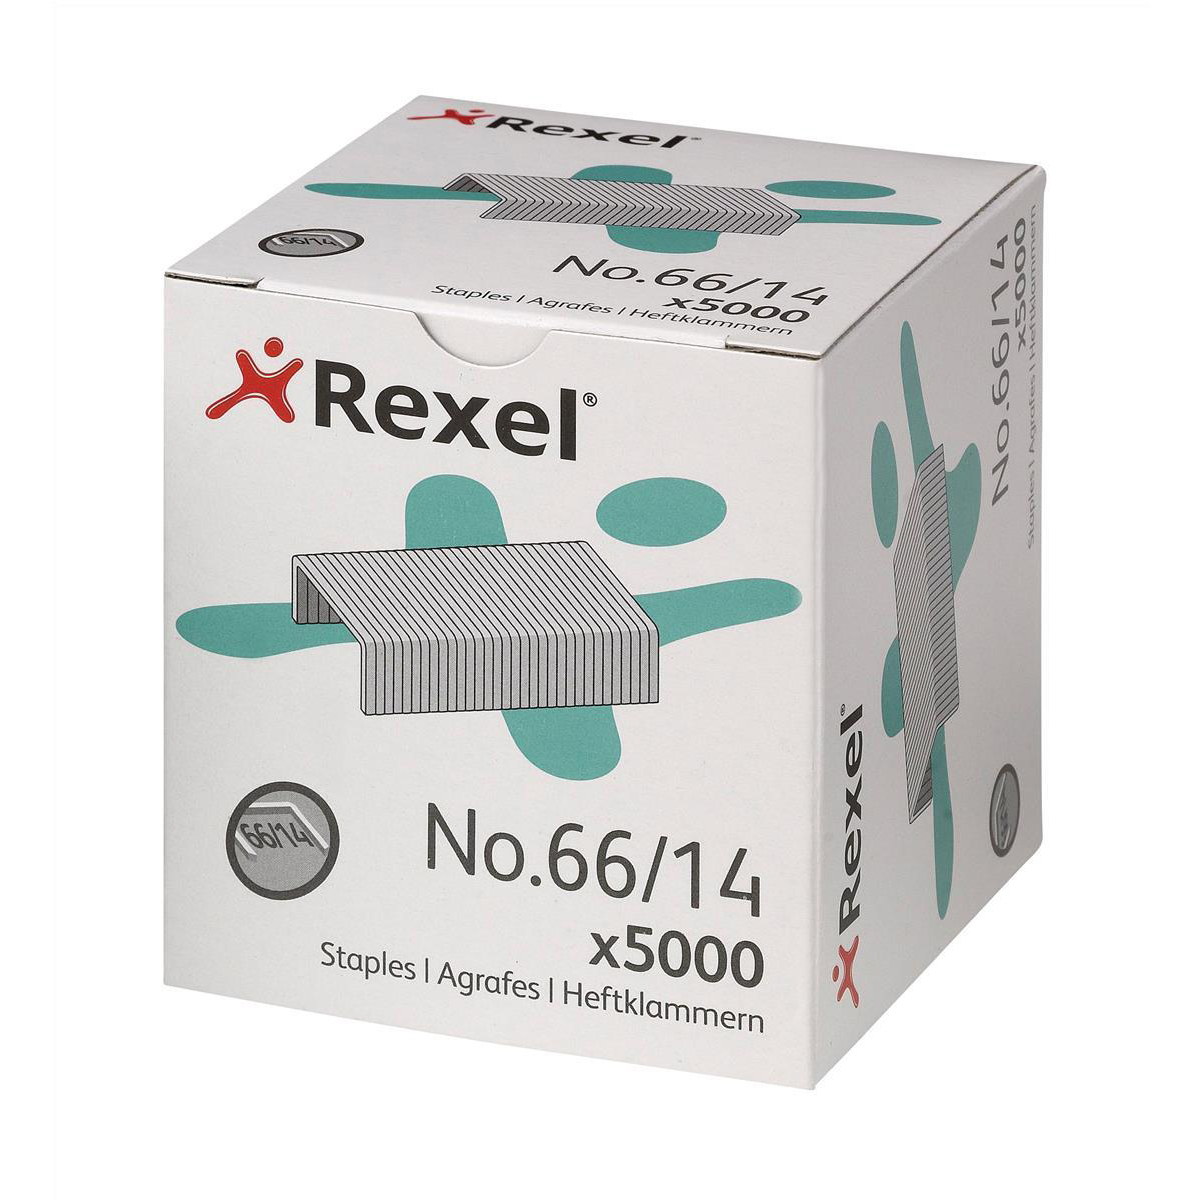 Rexel 66 Staples 14mm Ref 06075 Pack 5000